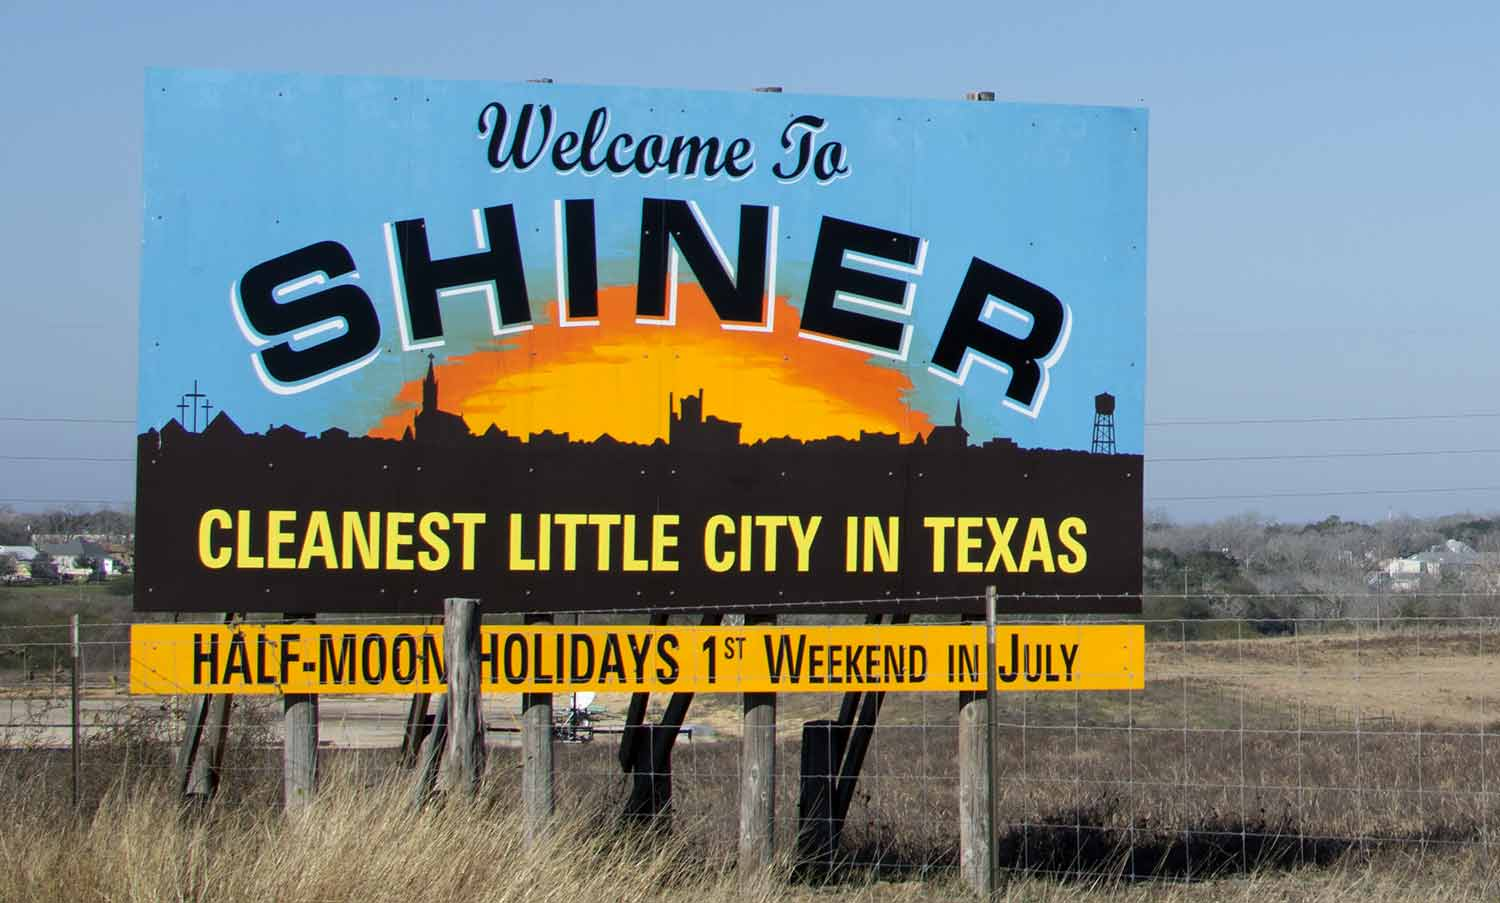 Welcome to Shiner highway billboard. The cleanest little city in texas.